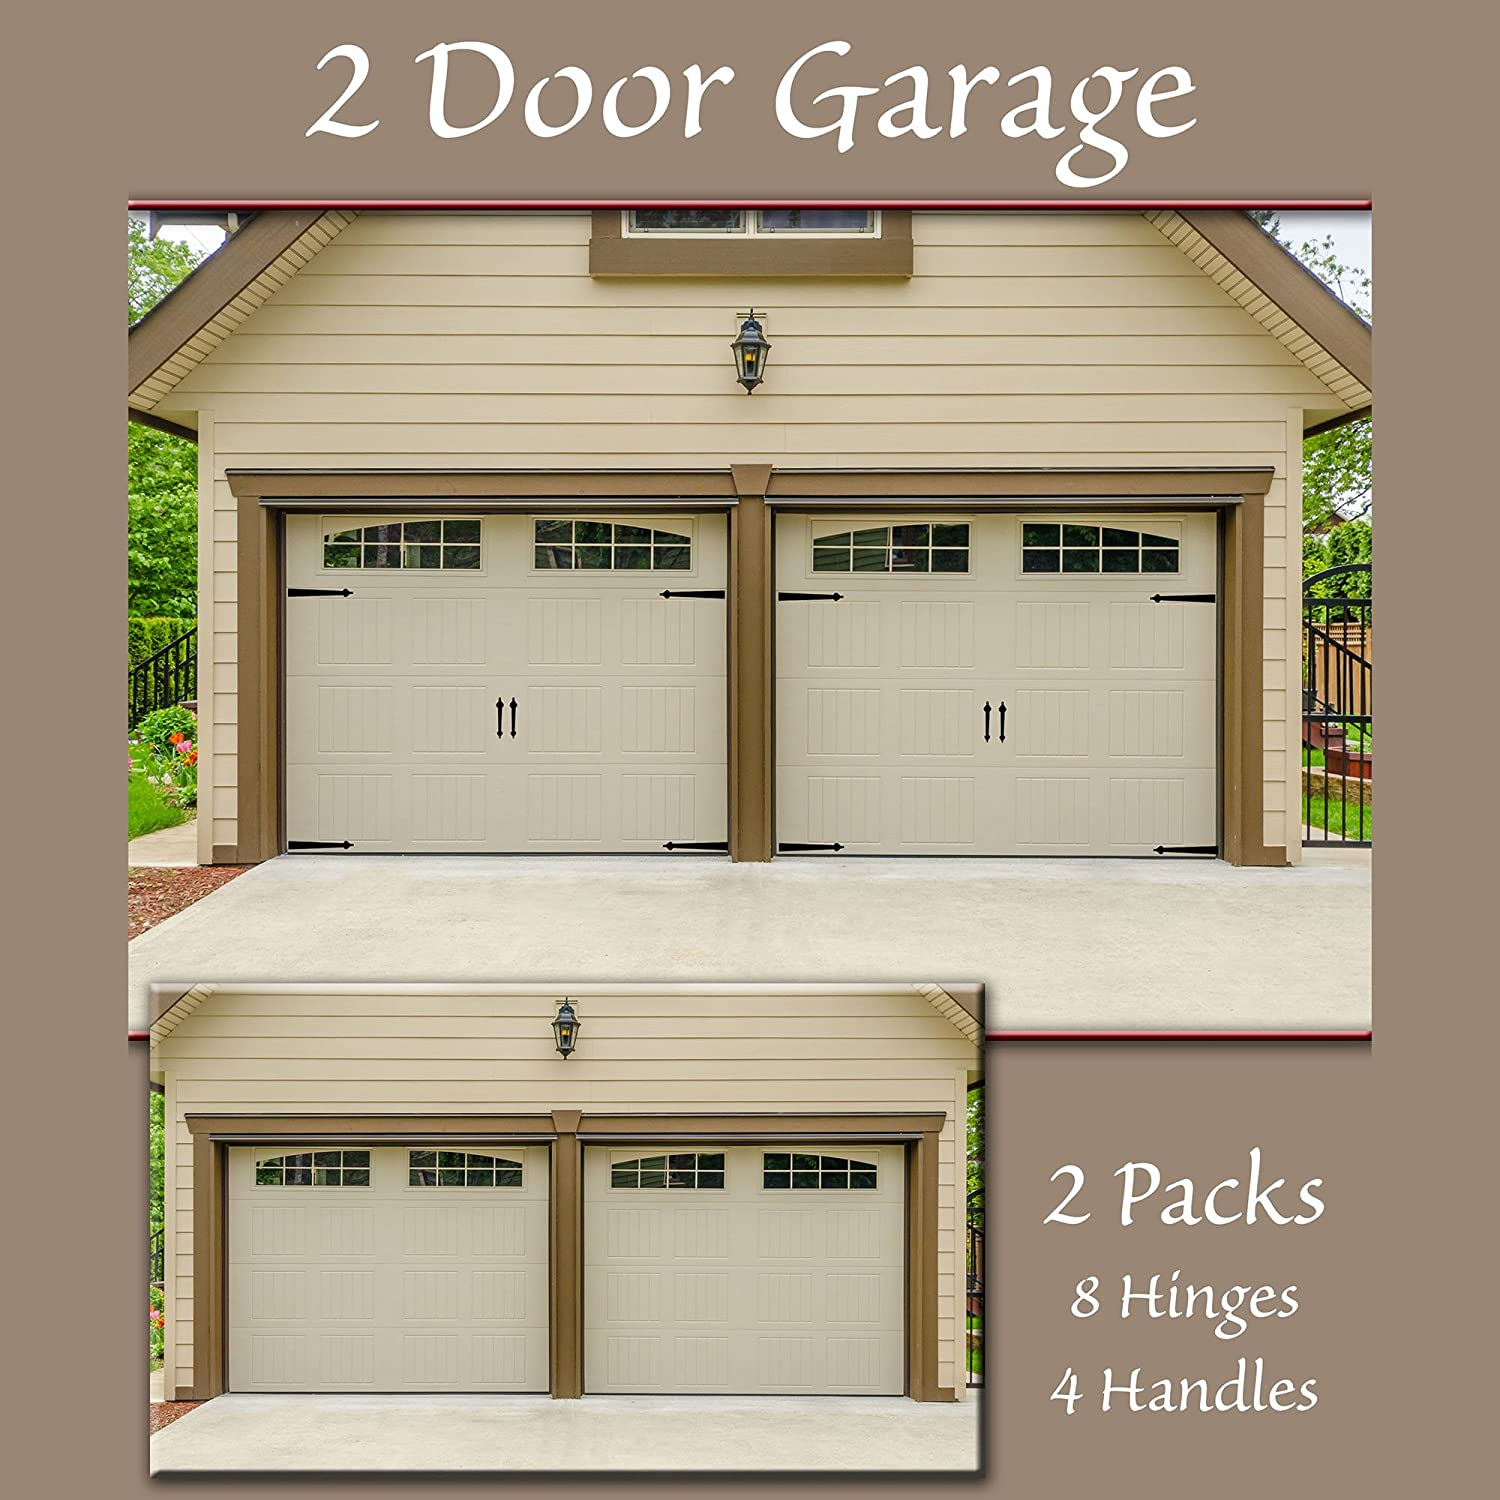 How To Install A Garage Door Video Images Design Ideas